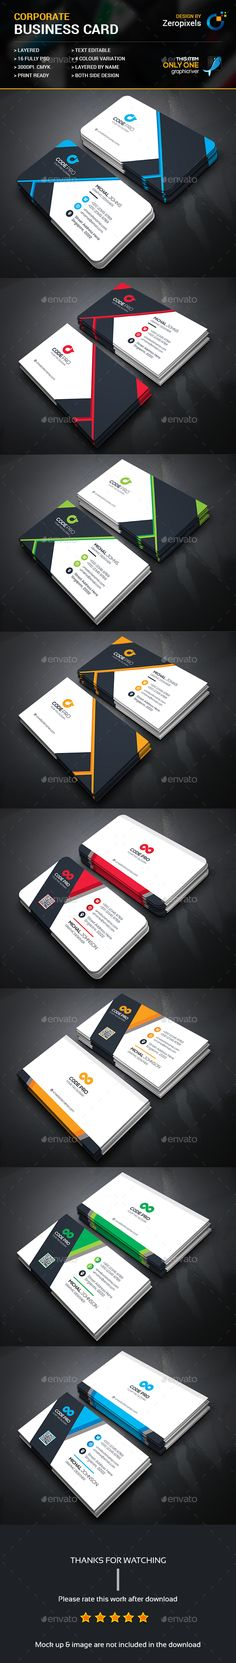 Corporate Business Card Templates PSD Bundle. Download here: https://graphicriver.net/item/corporate-business-card-bundle/17494475?ref=ksioks